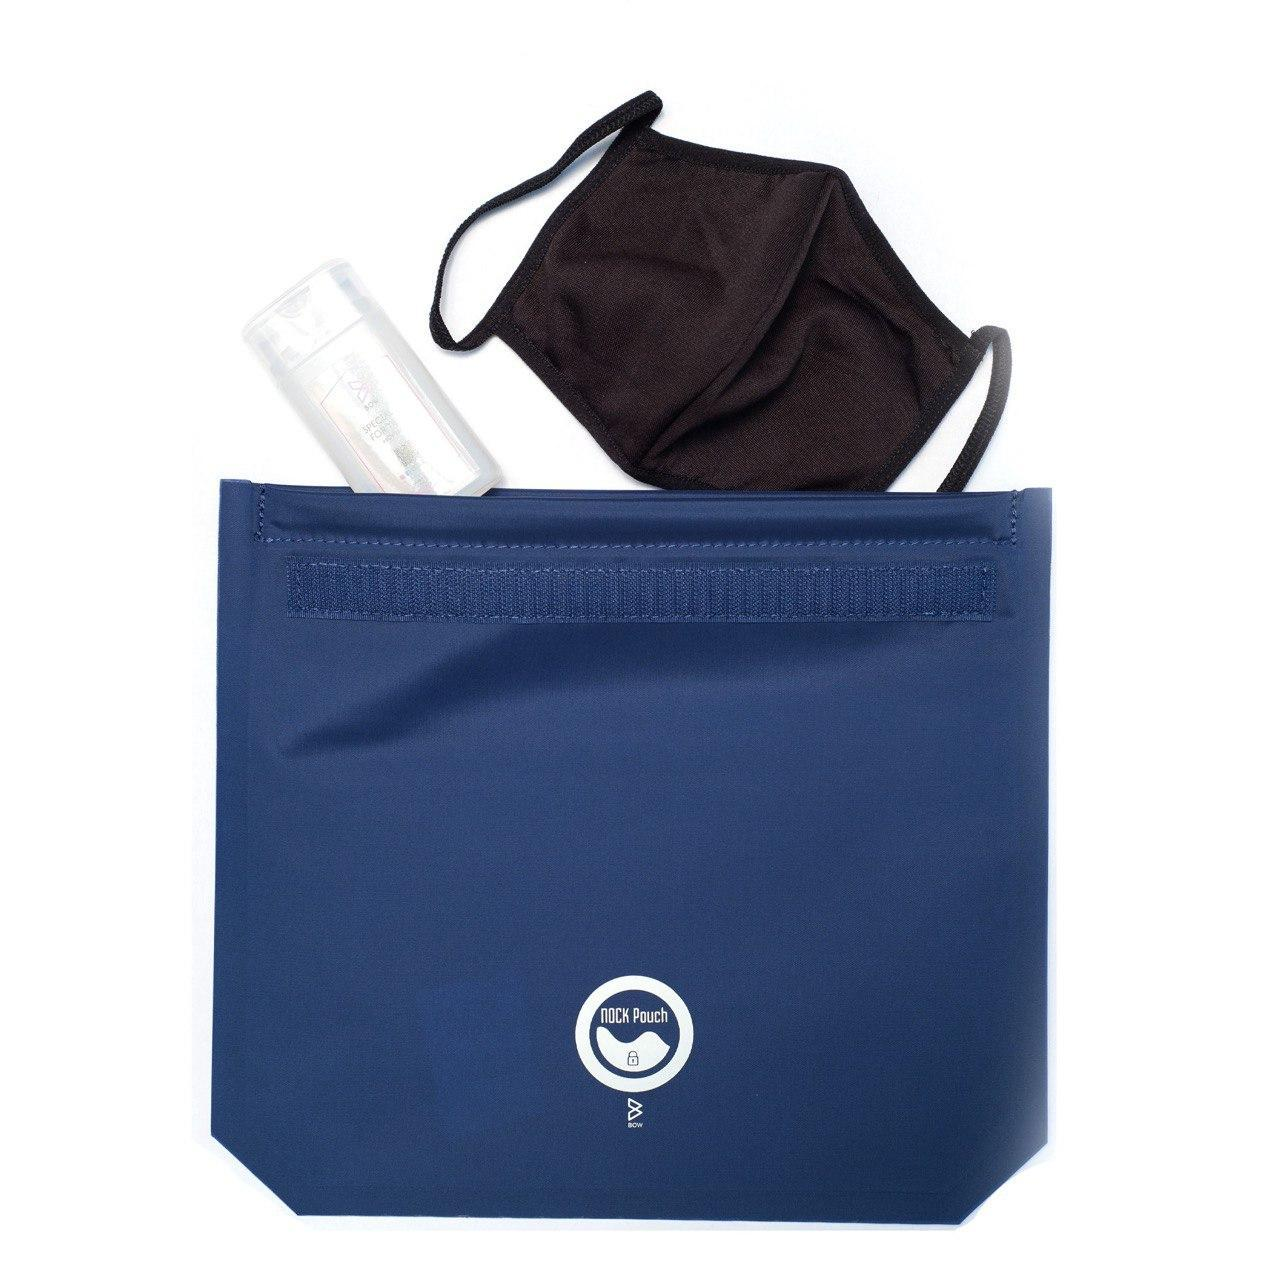 Nock Pouch Mini for Facial Mask Storage